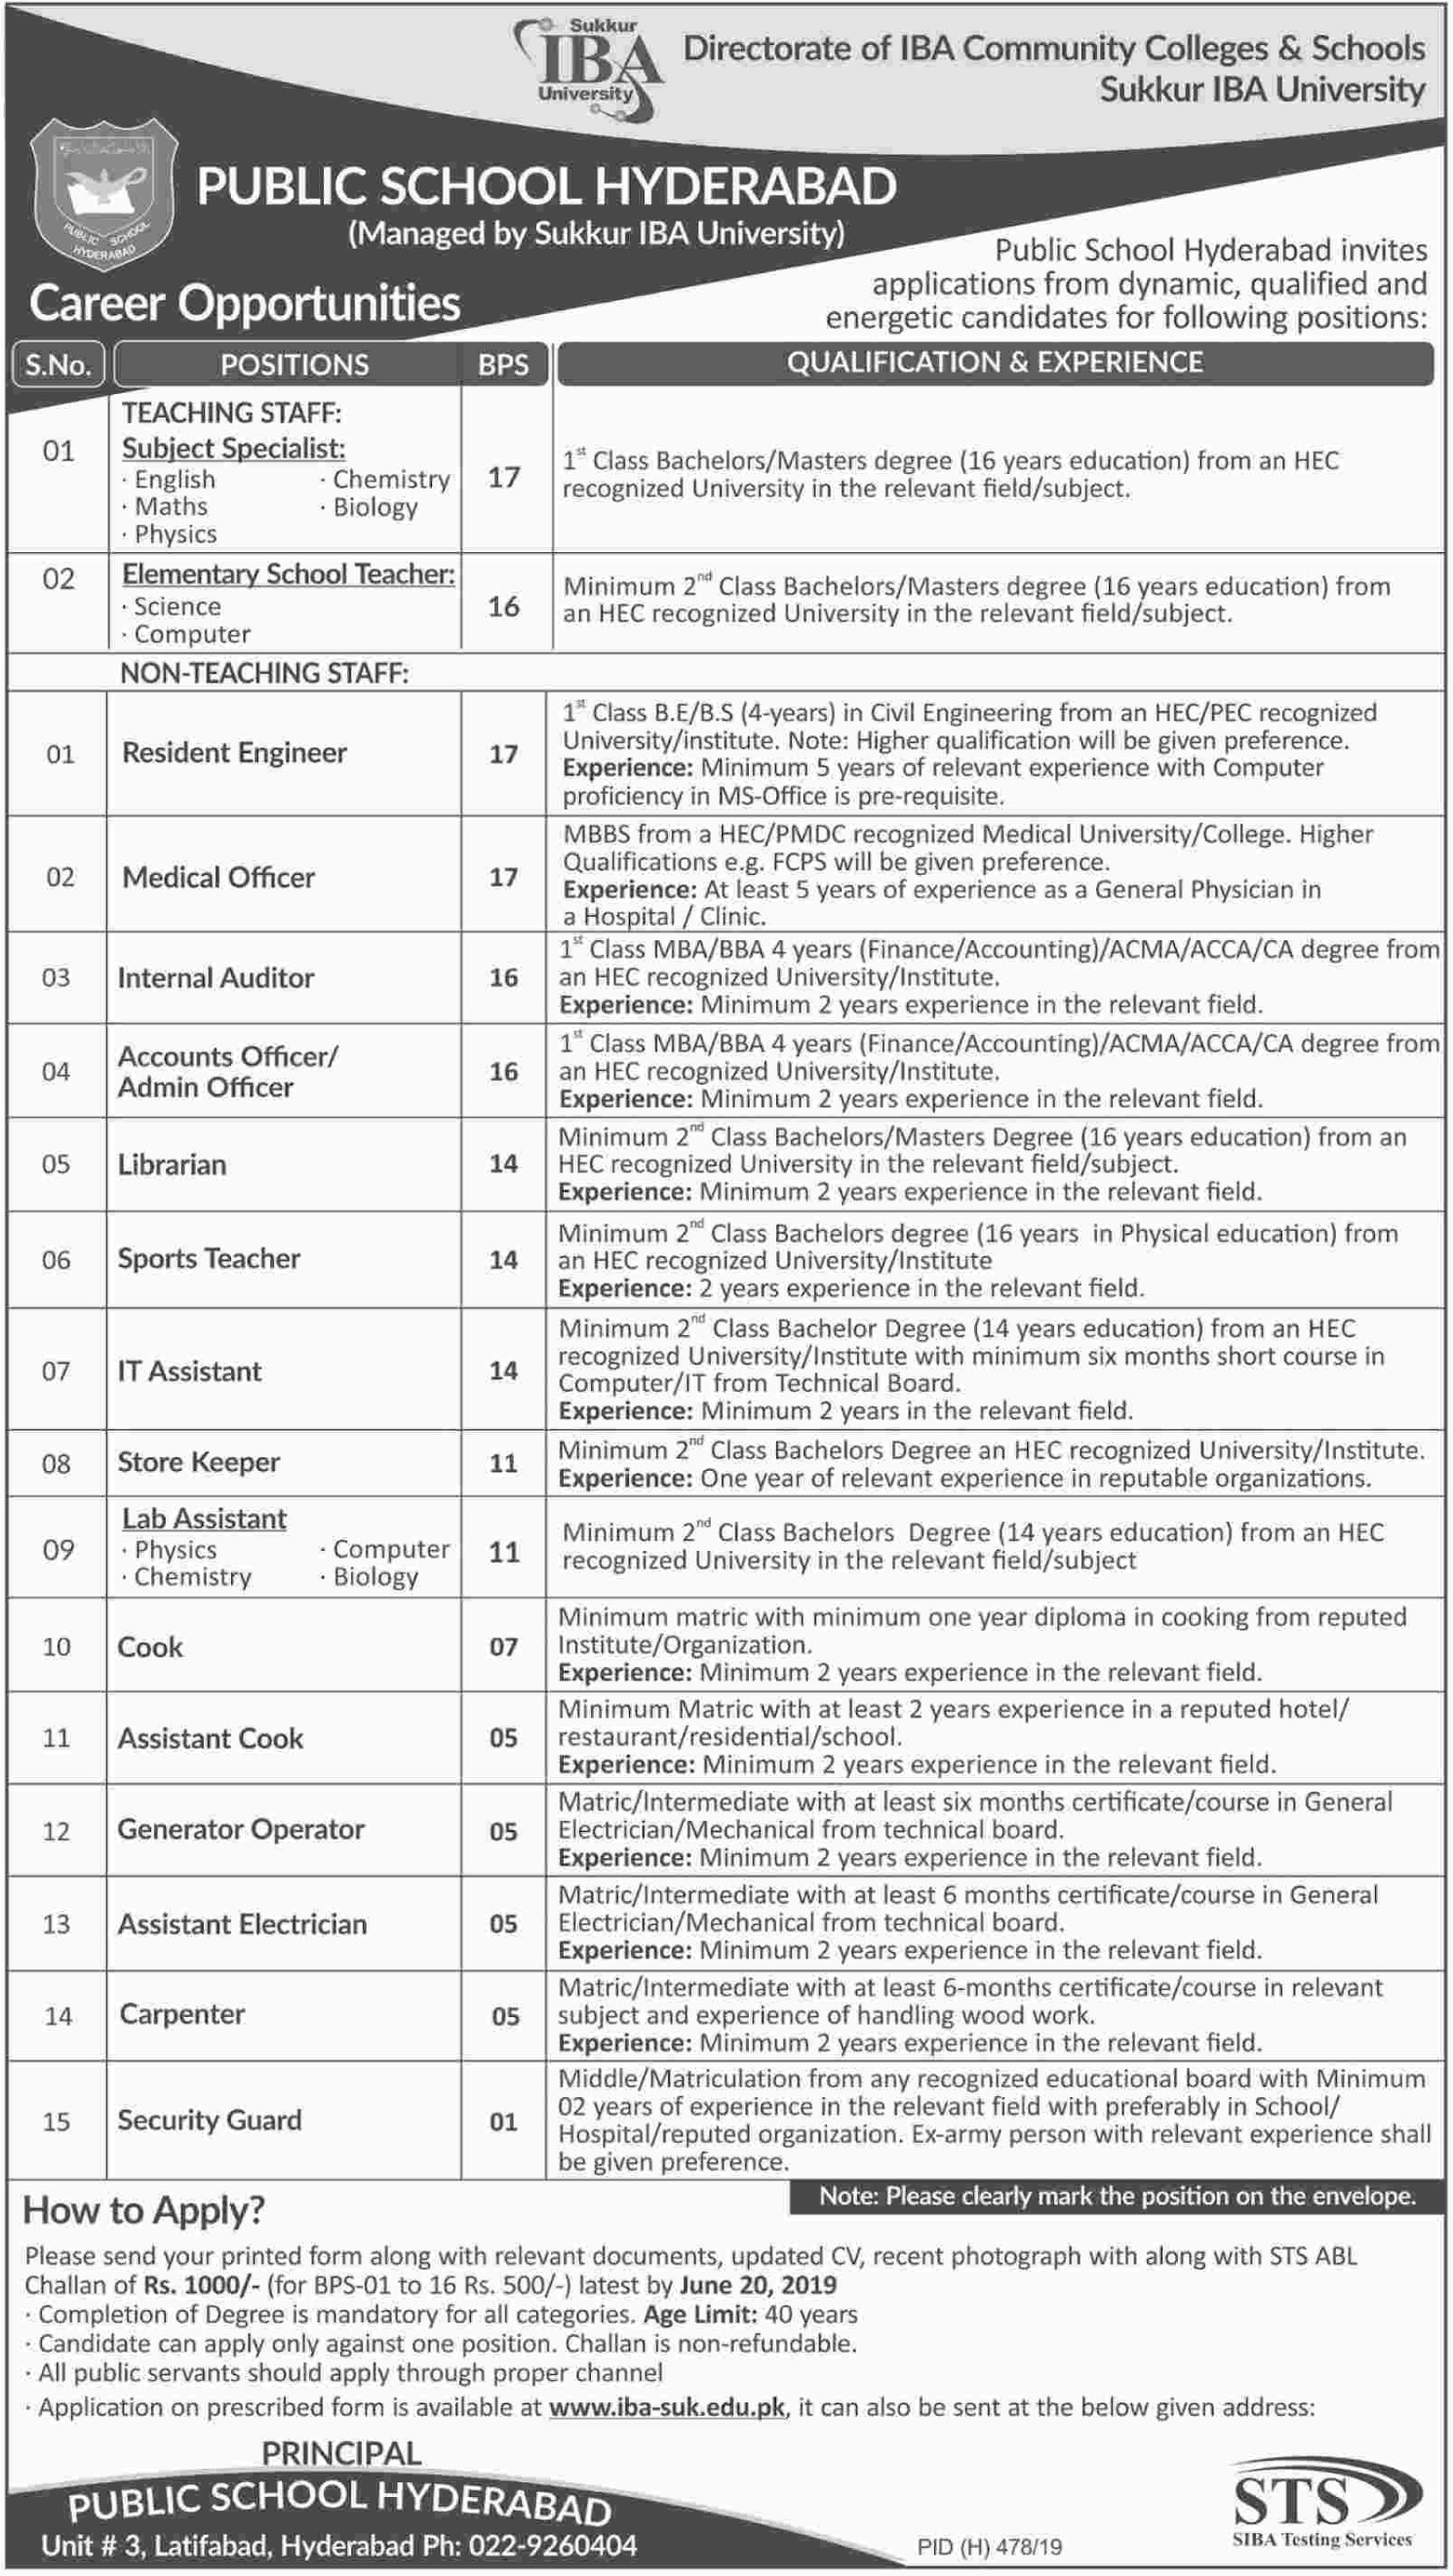 Public School Hyderabad Jobs 2019 Sukkur IBA University